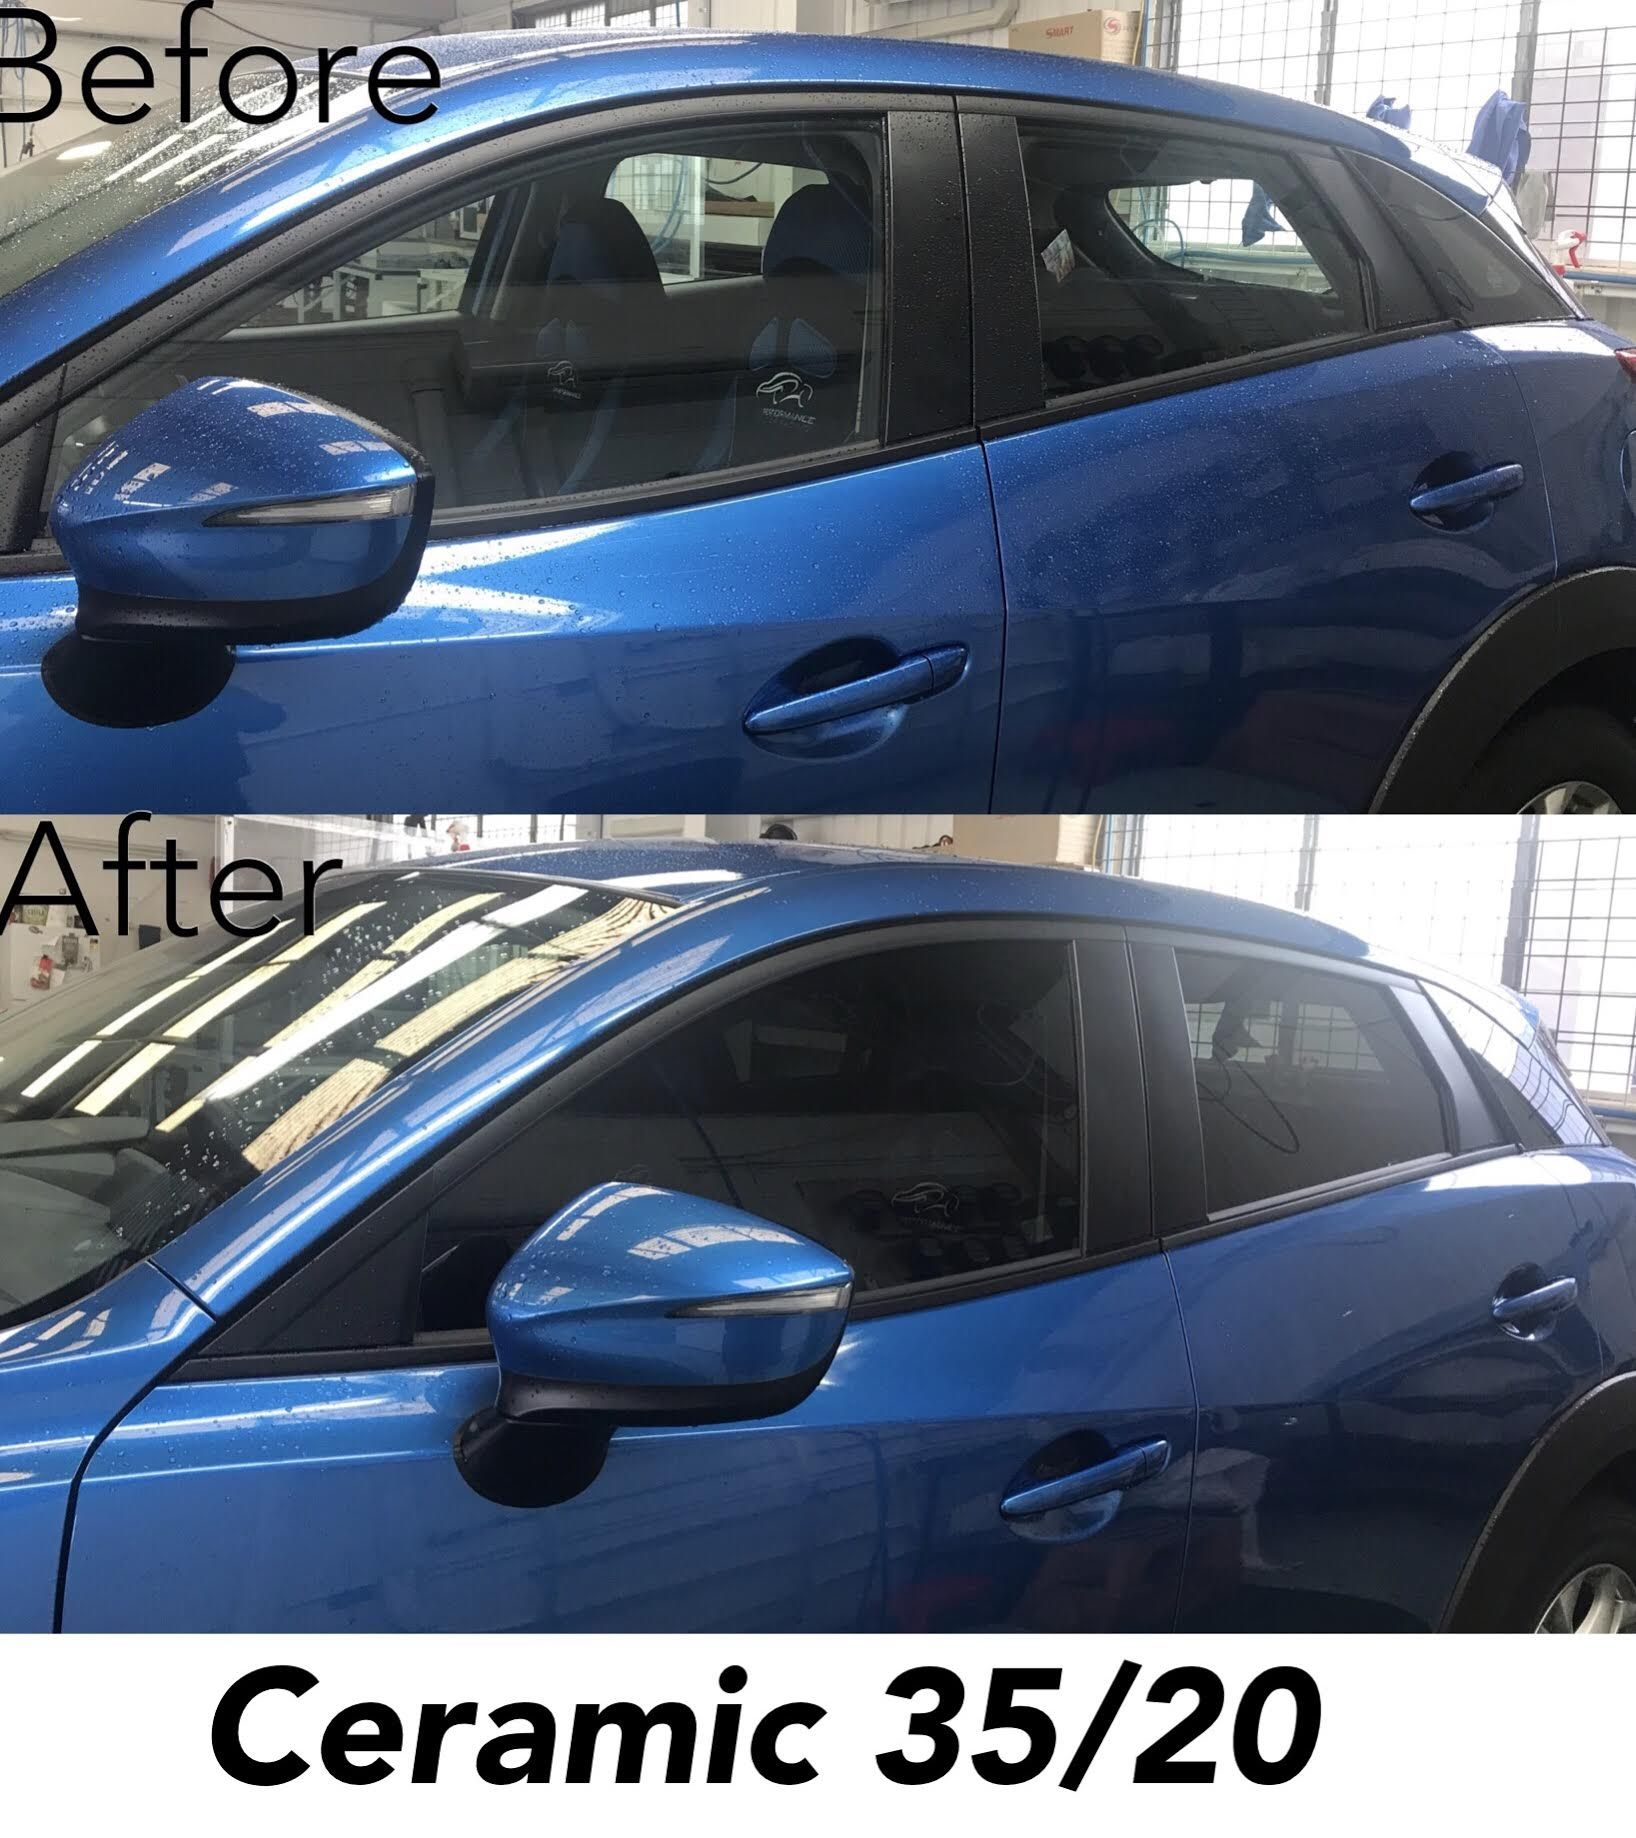 Window Tinting Cost Estimate